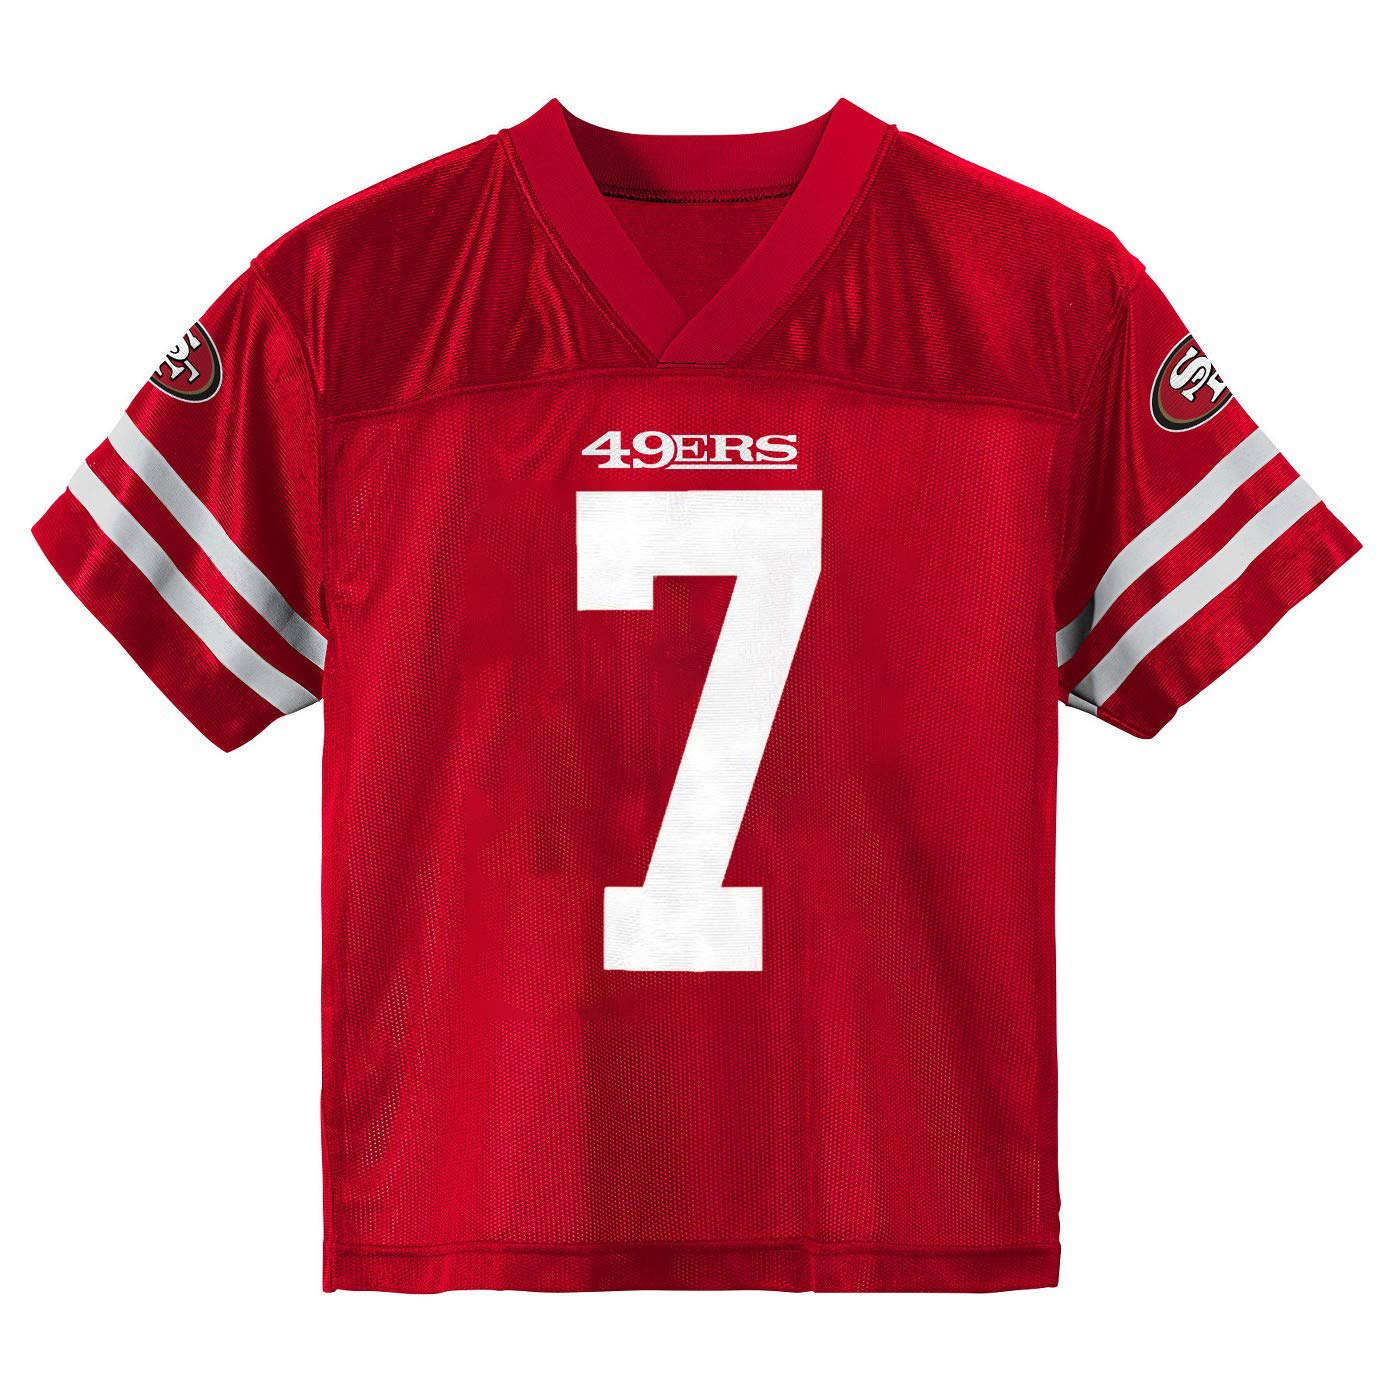 ee4f0482c Amazon.com  Colin Kaepernick San Francisco 49ers Red Home Player Jersey  Youth  Clothing